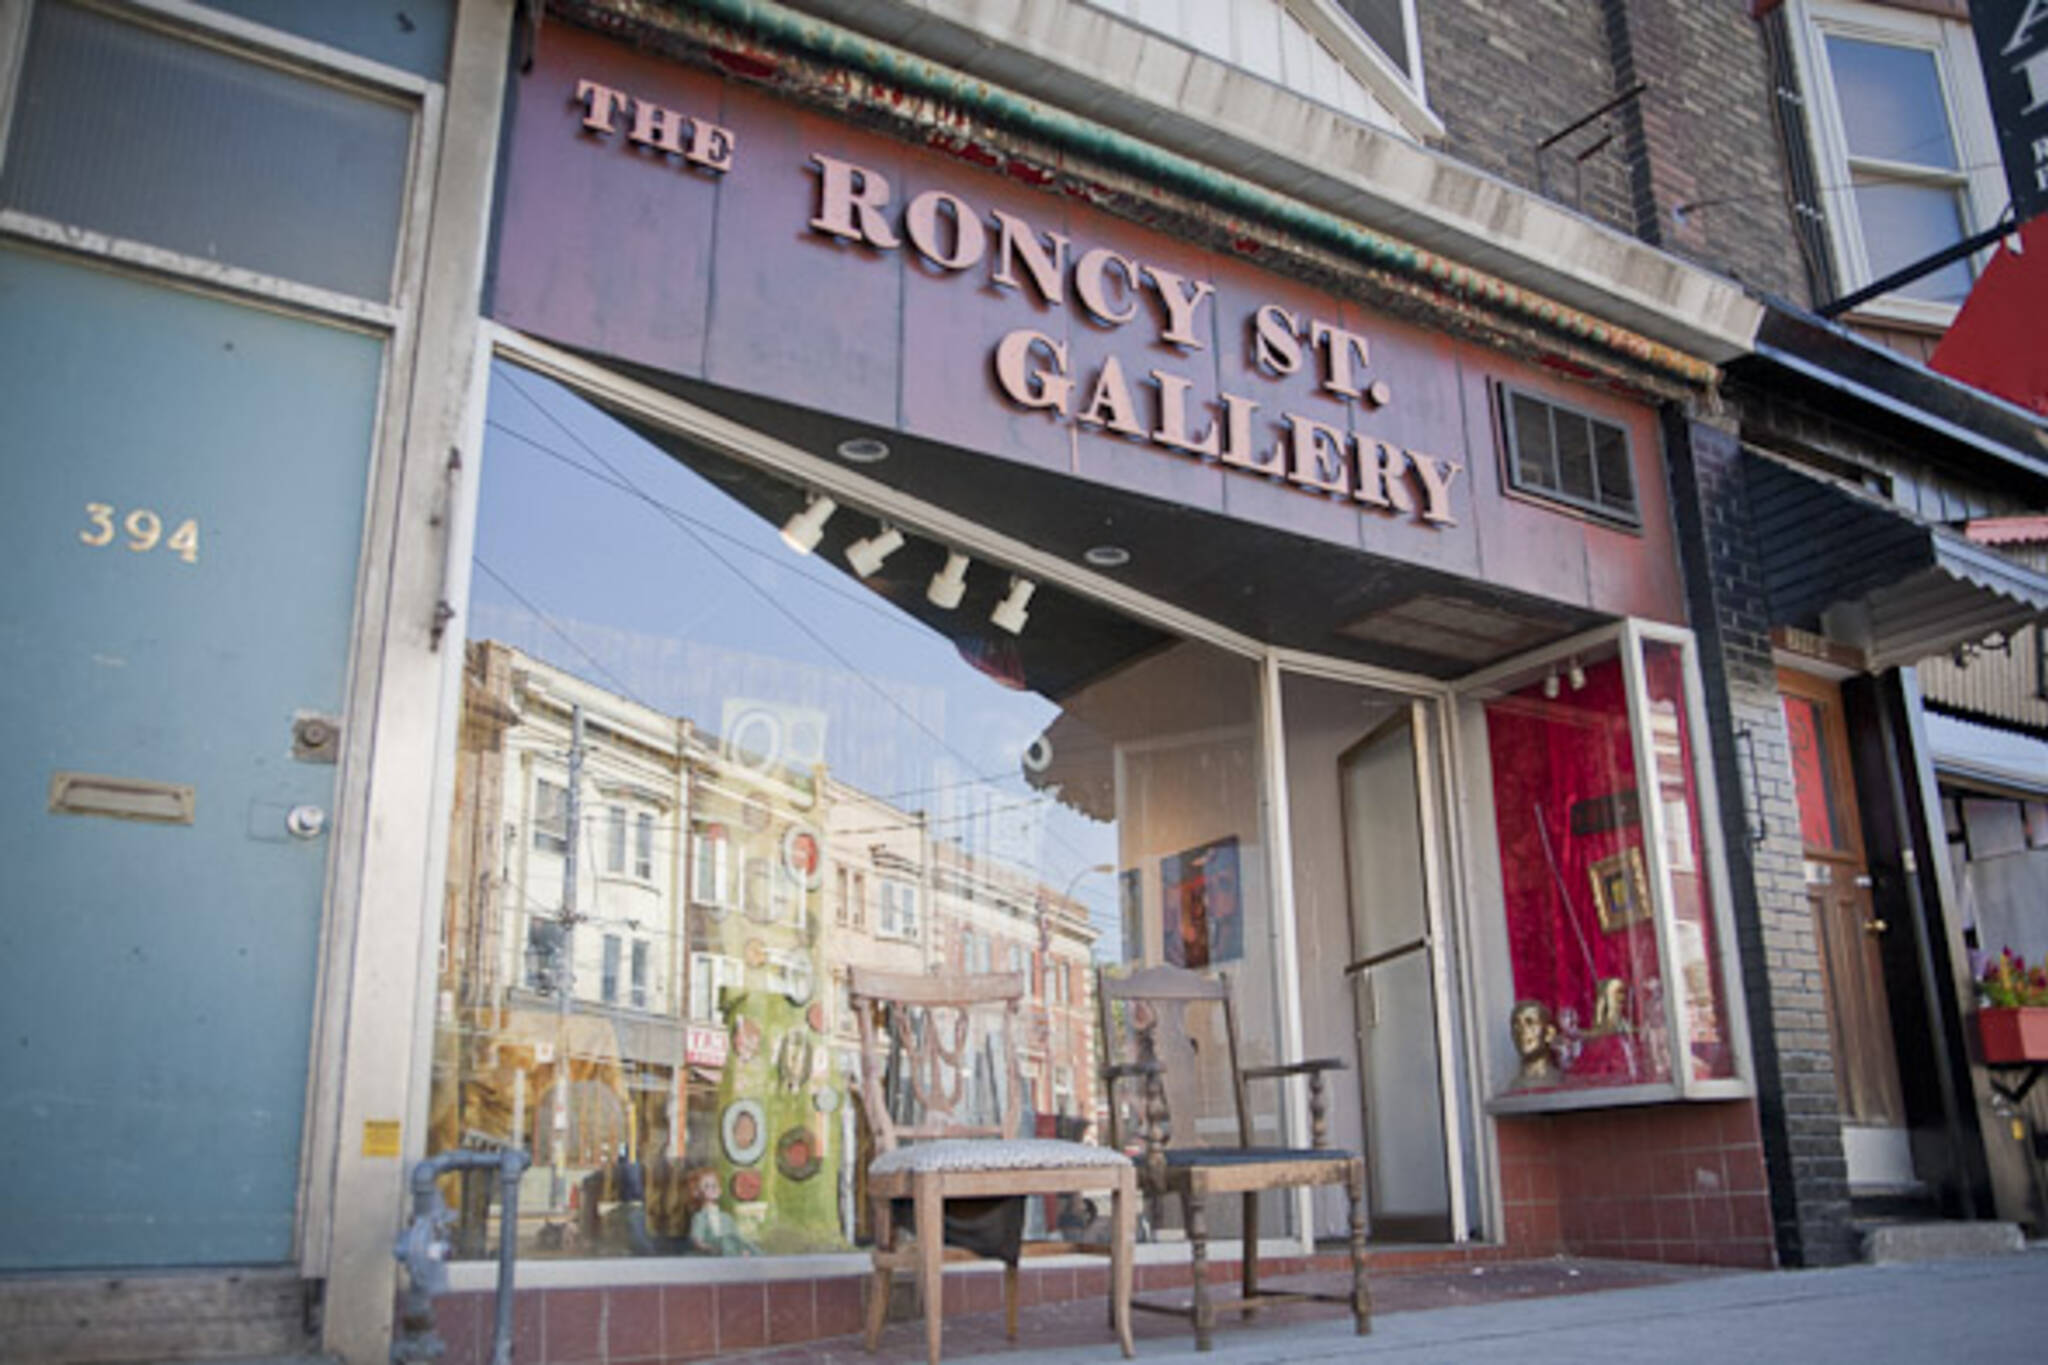 Roncy St Gallery